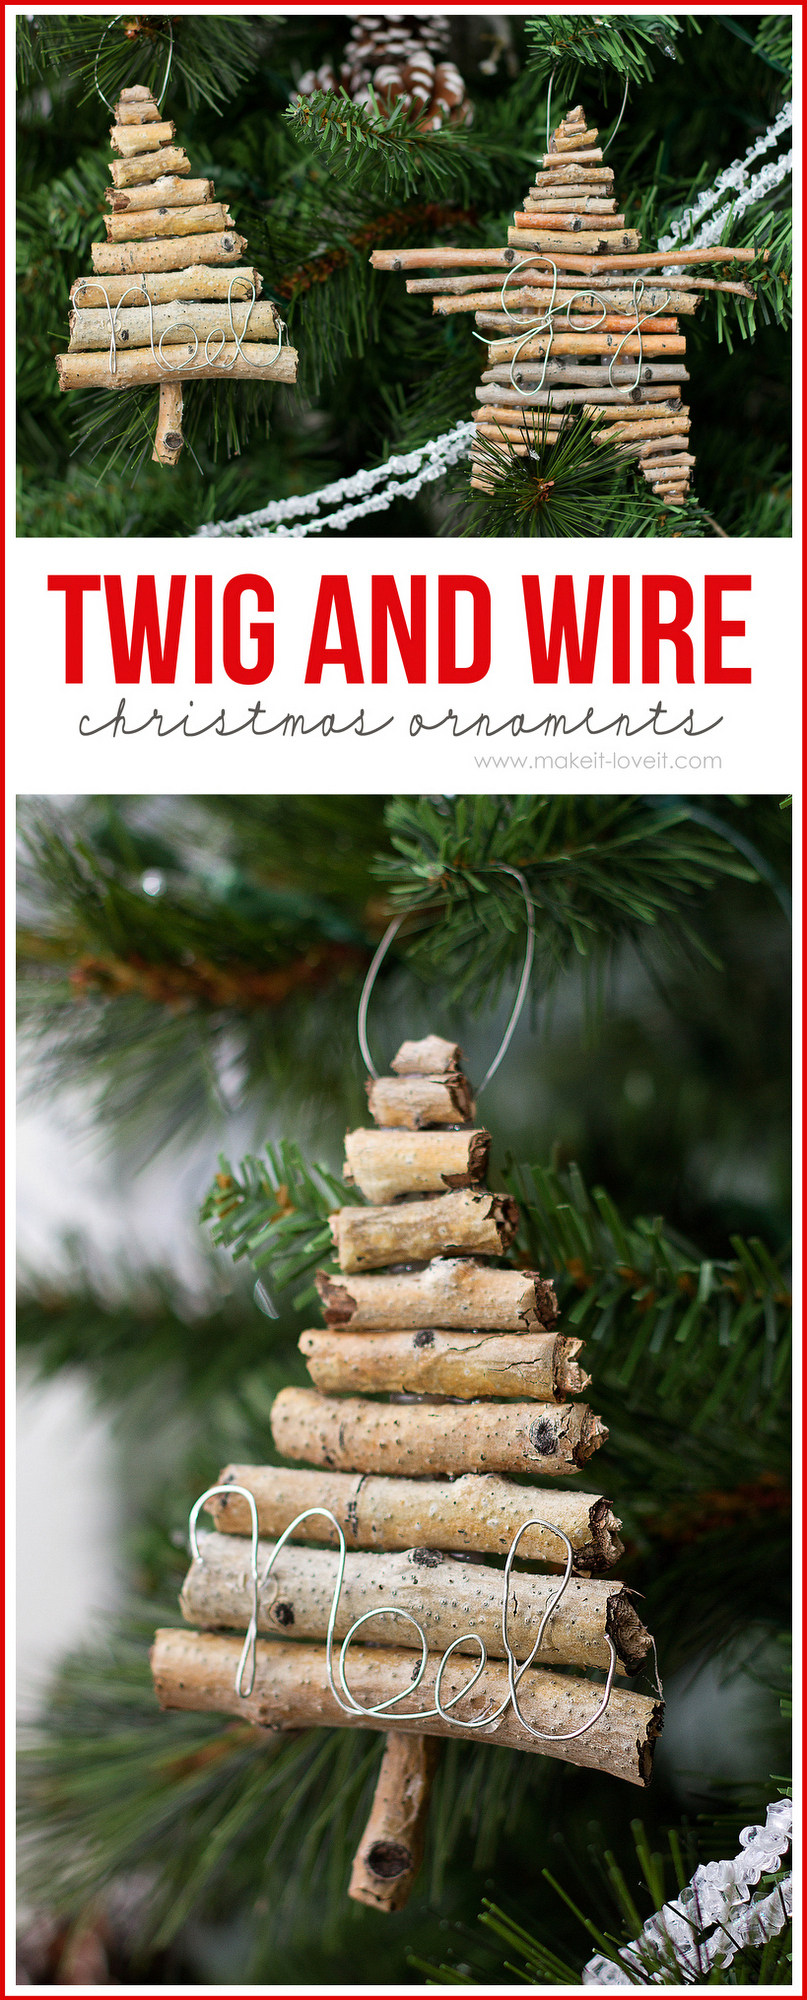 Bank Aus Holz Twig And Wire Christmas Ornaments - U Create